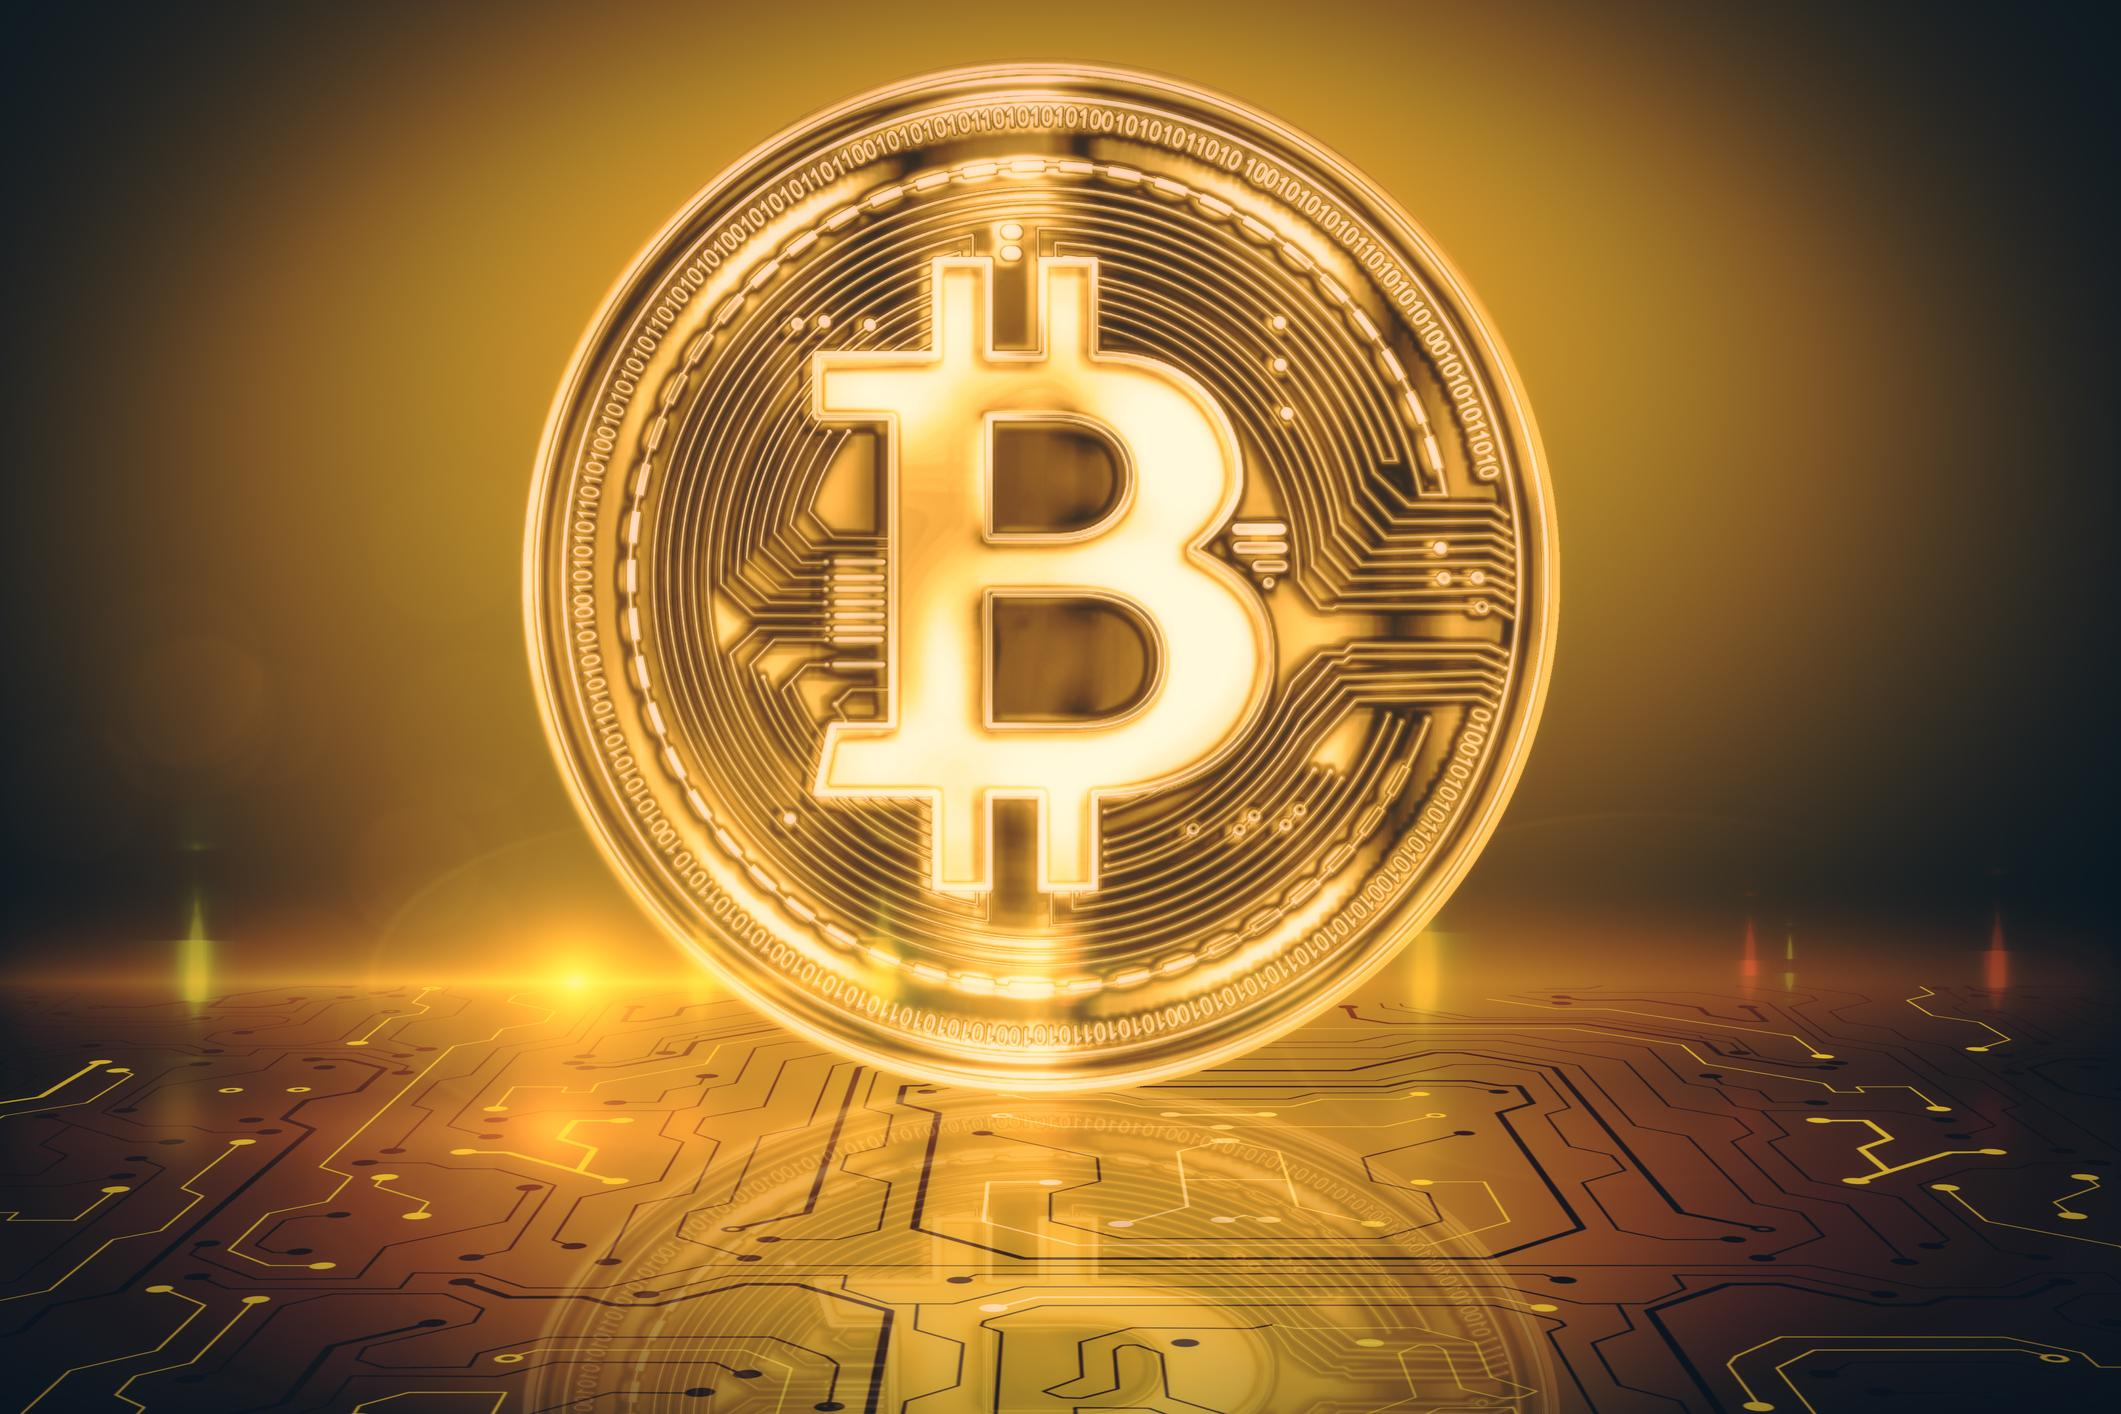 Bitcoin Breaks $10,000: Here's Why The World's Most Popular Cryptocurrency Could Surge to New All-Time Highs